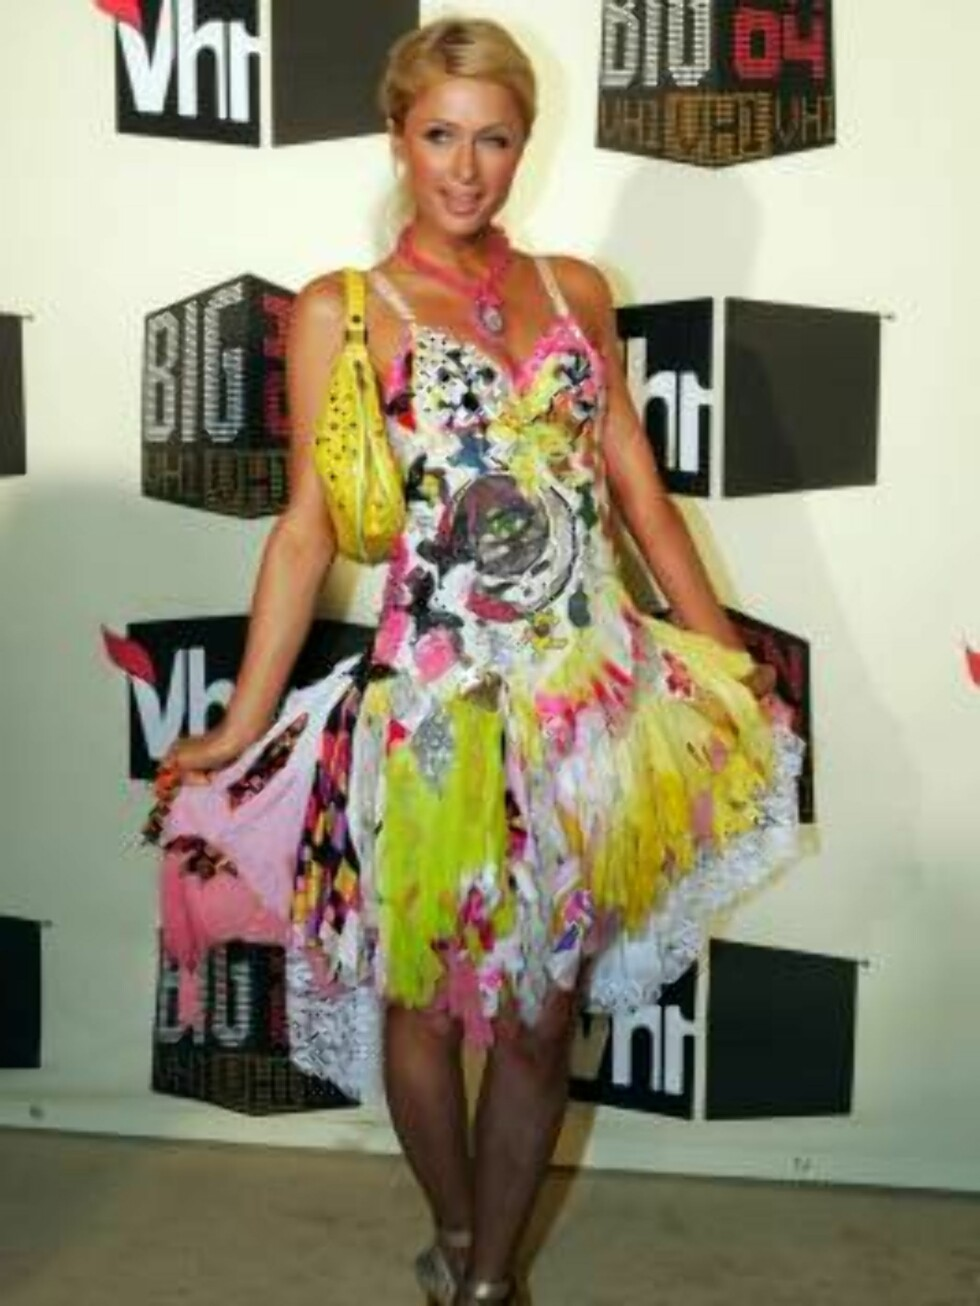 Paris Hilton poses as she arrives at the VH1 Big in 04 awards, Wednesday night, Dec. 1, 2004, in Los Angeles. The show will air on Dec. 5. (AP Photo/Mark J. Terrill) Foto: AP/Scanpix